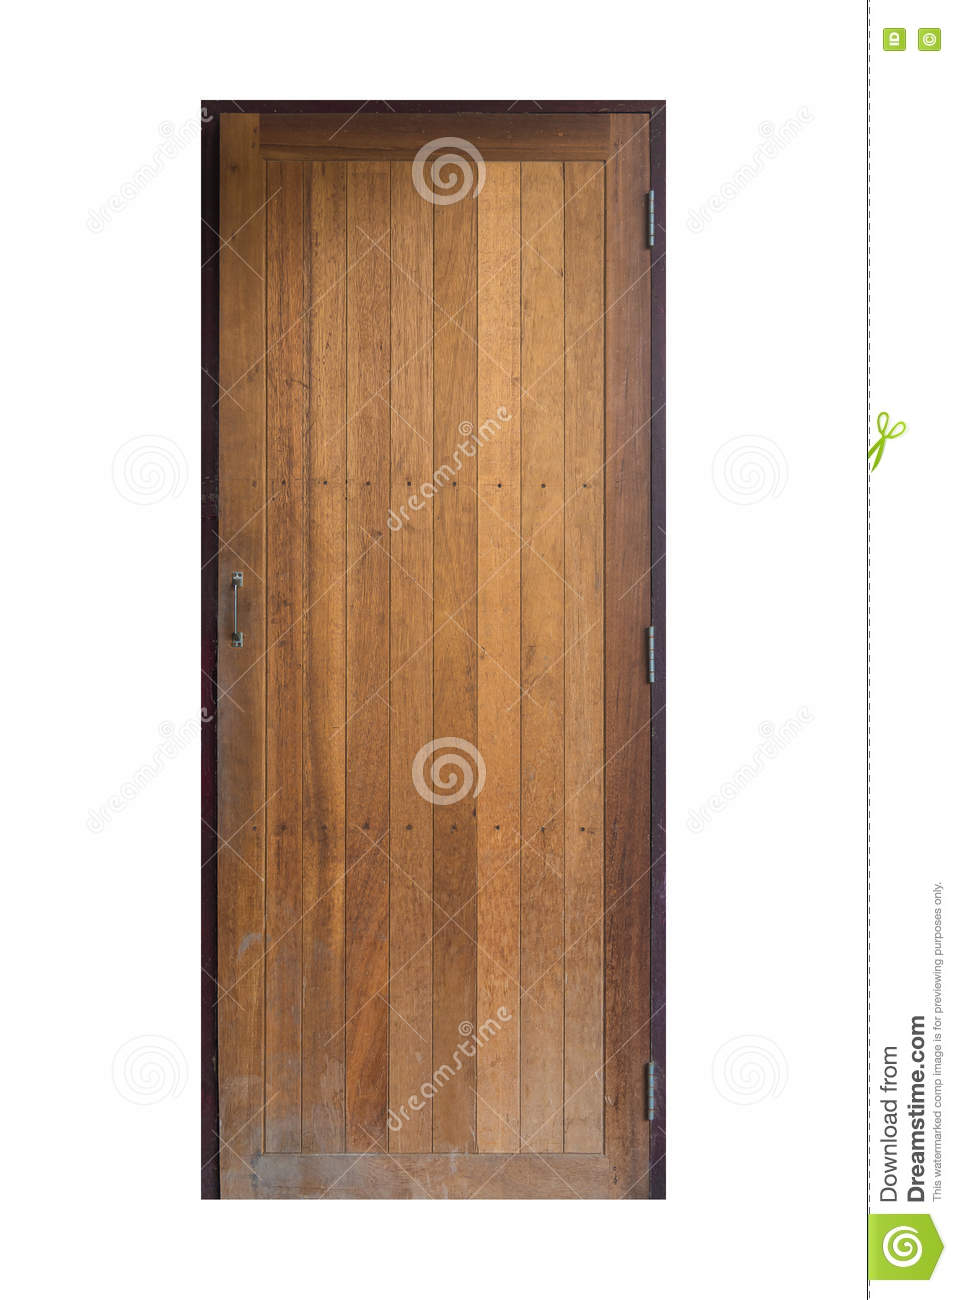 white wood door texture. Unique Texture White Wood Door Texture Old Grunge Simple Door Background Texture  Stock Image And White Wood Door Texture